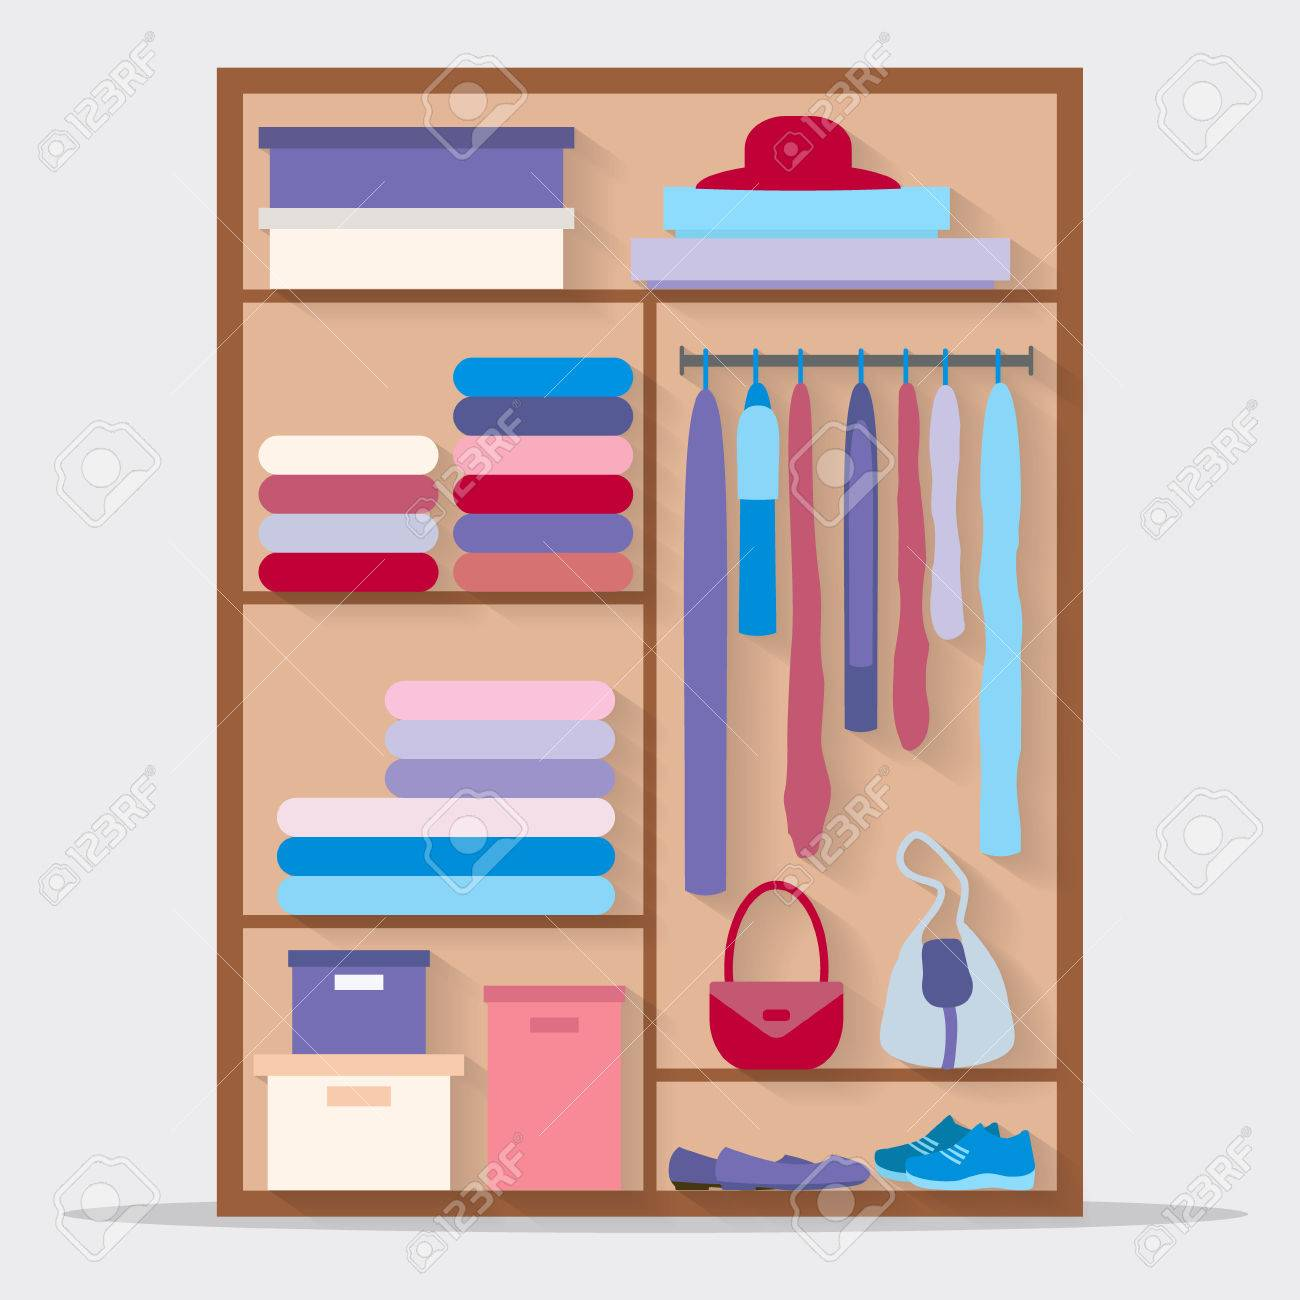 Wardrobe For Cloths Closet With Clothes And Bags Others Flat Style Vector Illustration